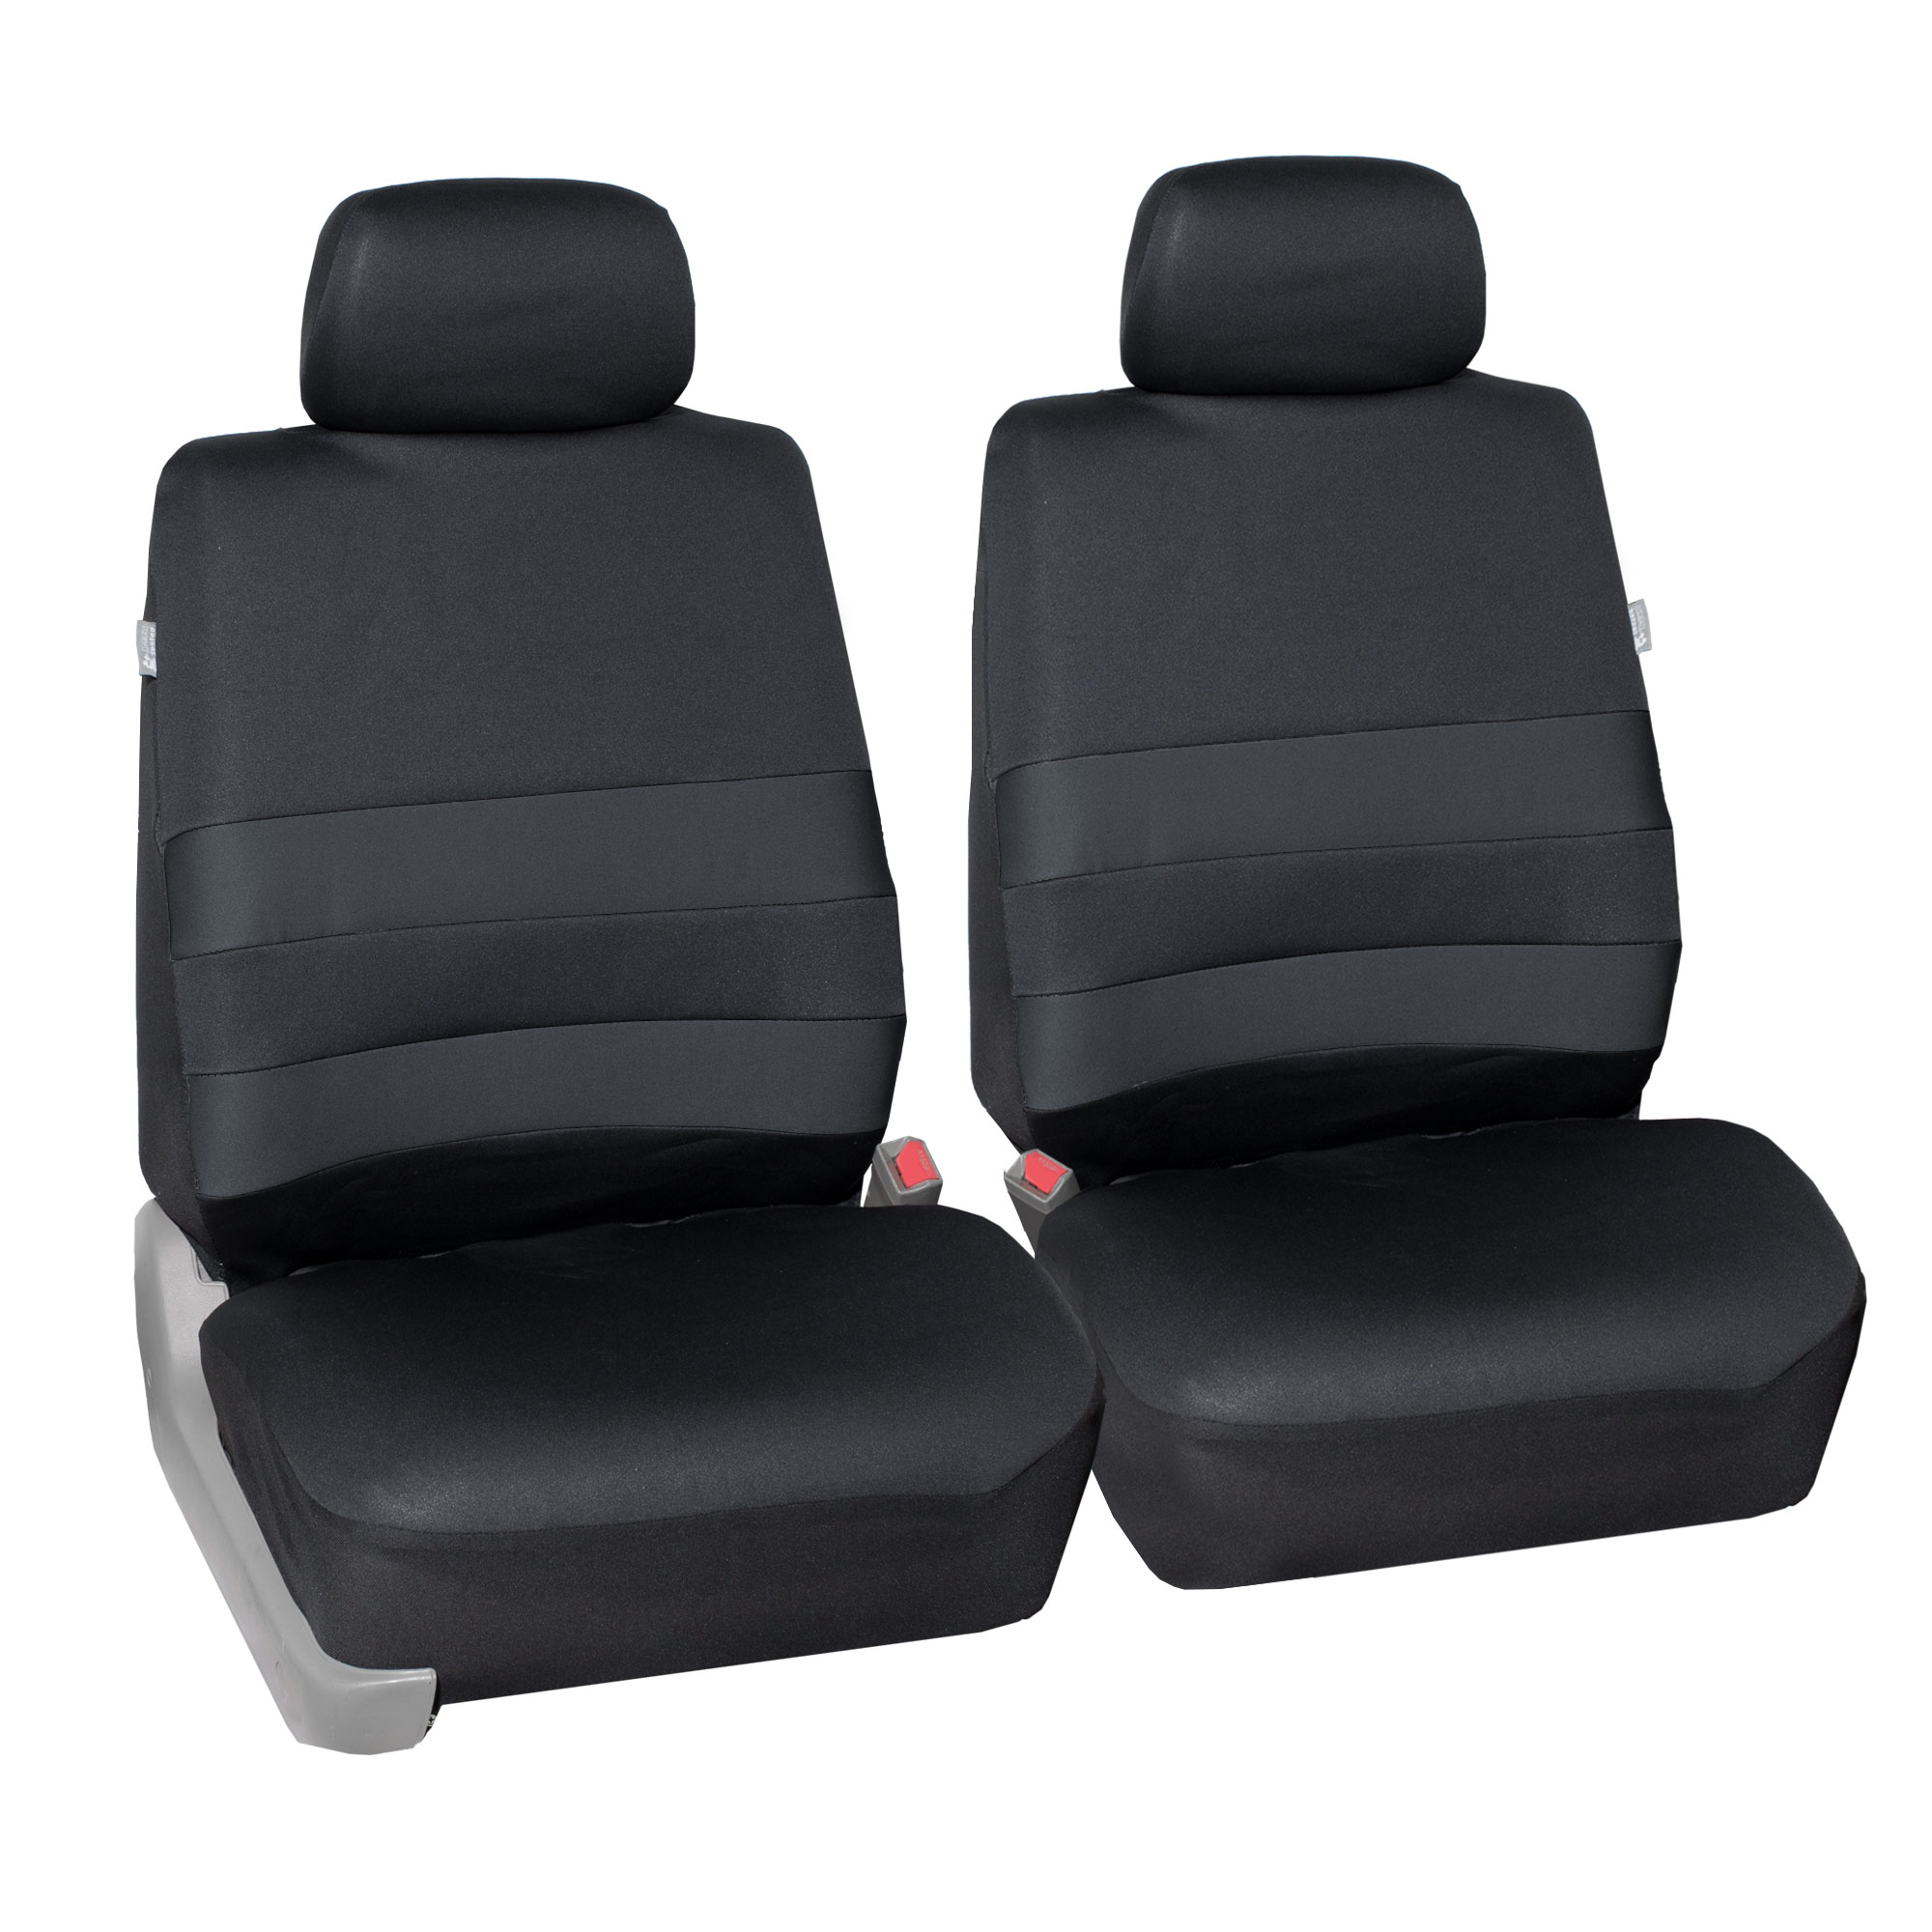 Neoprene Seat Covers Front Buckets For SUV Van Sedan Coupe